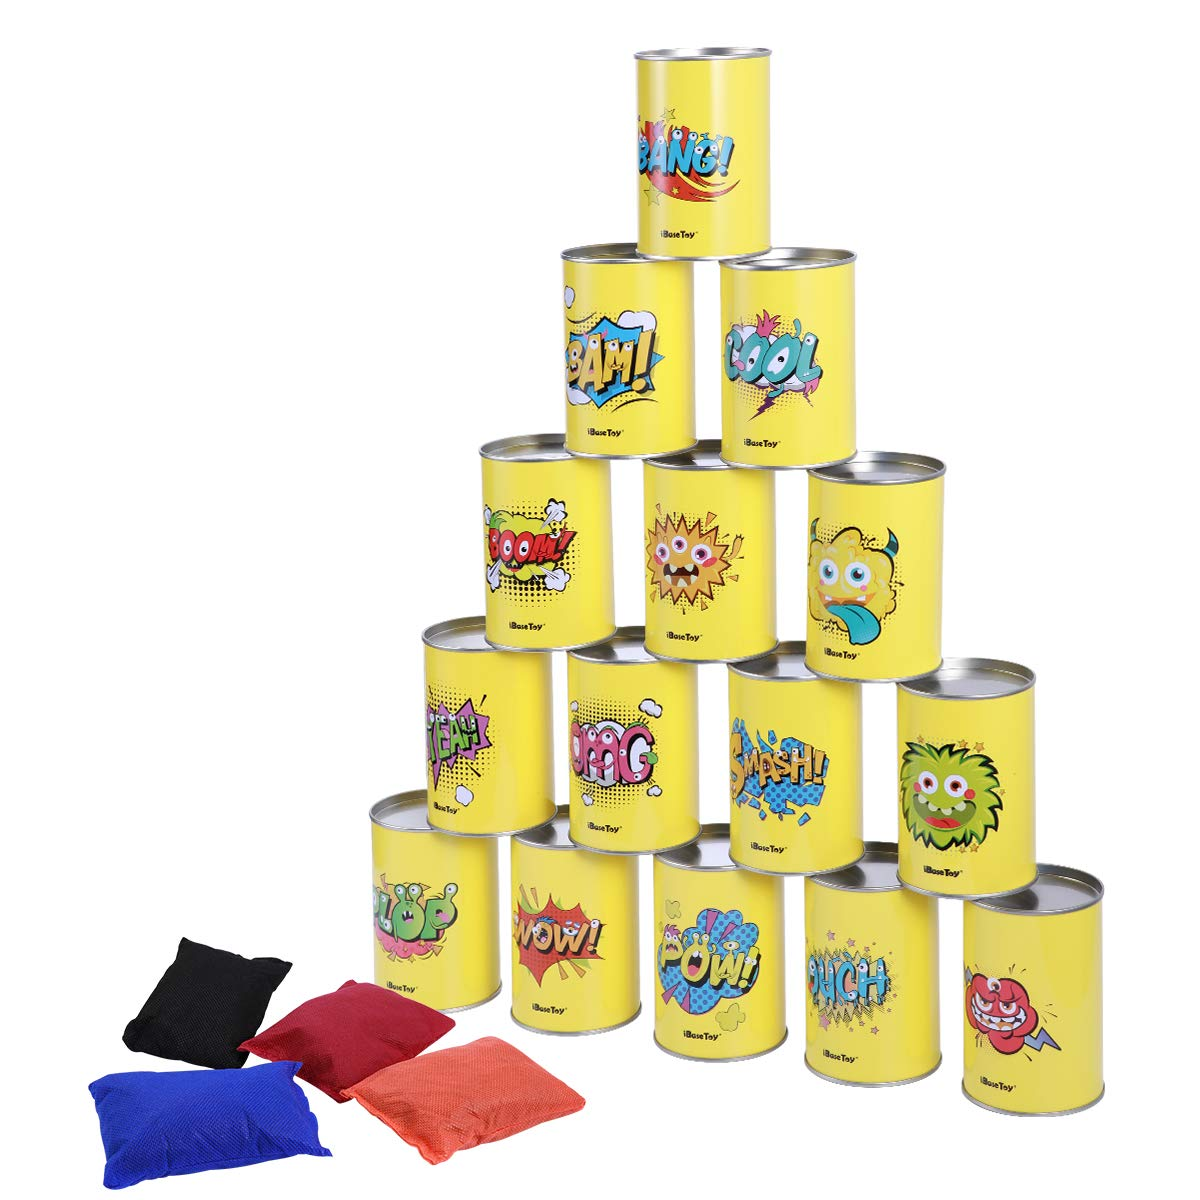 iBaseToy Party Games for Kids & Adults, Garden Games Tin Can Alley, Carnival Games Bean Bag Toss Game for Birthday Party-15 Tin Cans and 4 Beanbags Included by iBaseToy